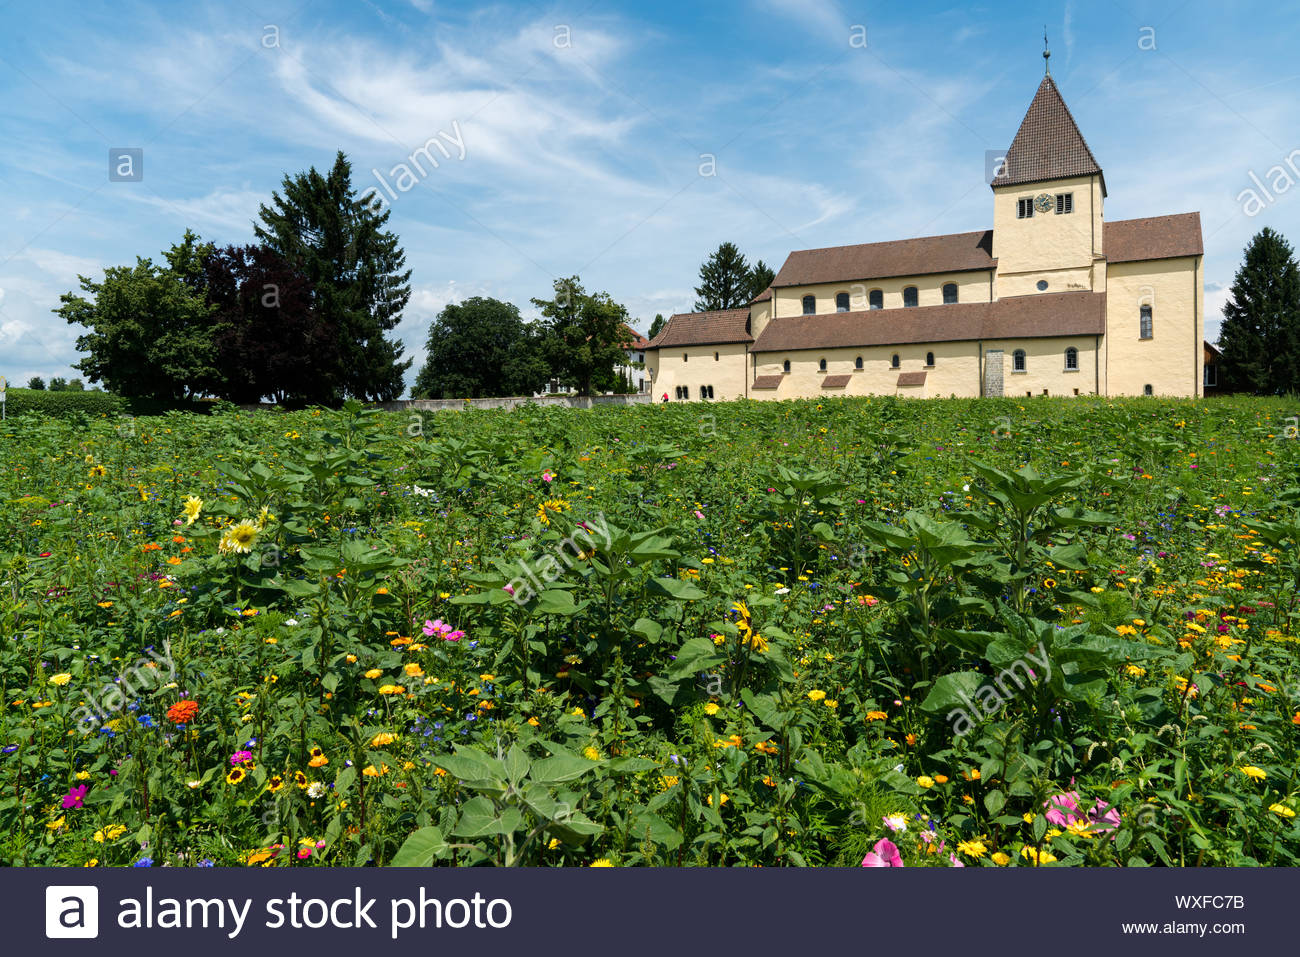 the church of st georg on reichenau island on lake constance with colorful wildflowers WXFC7B